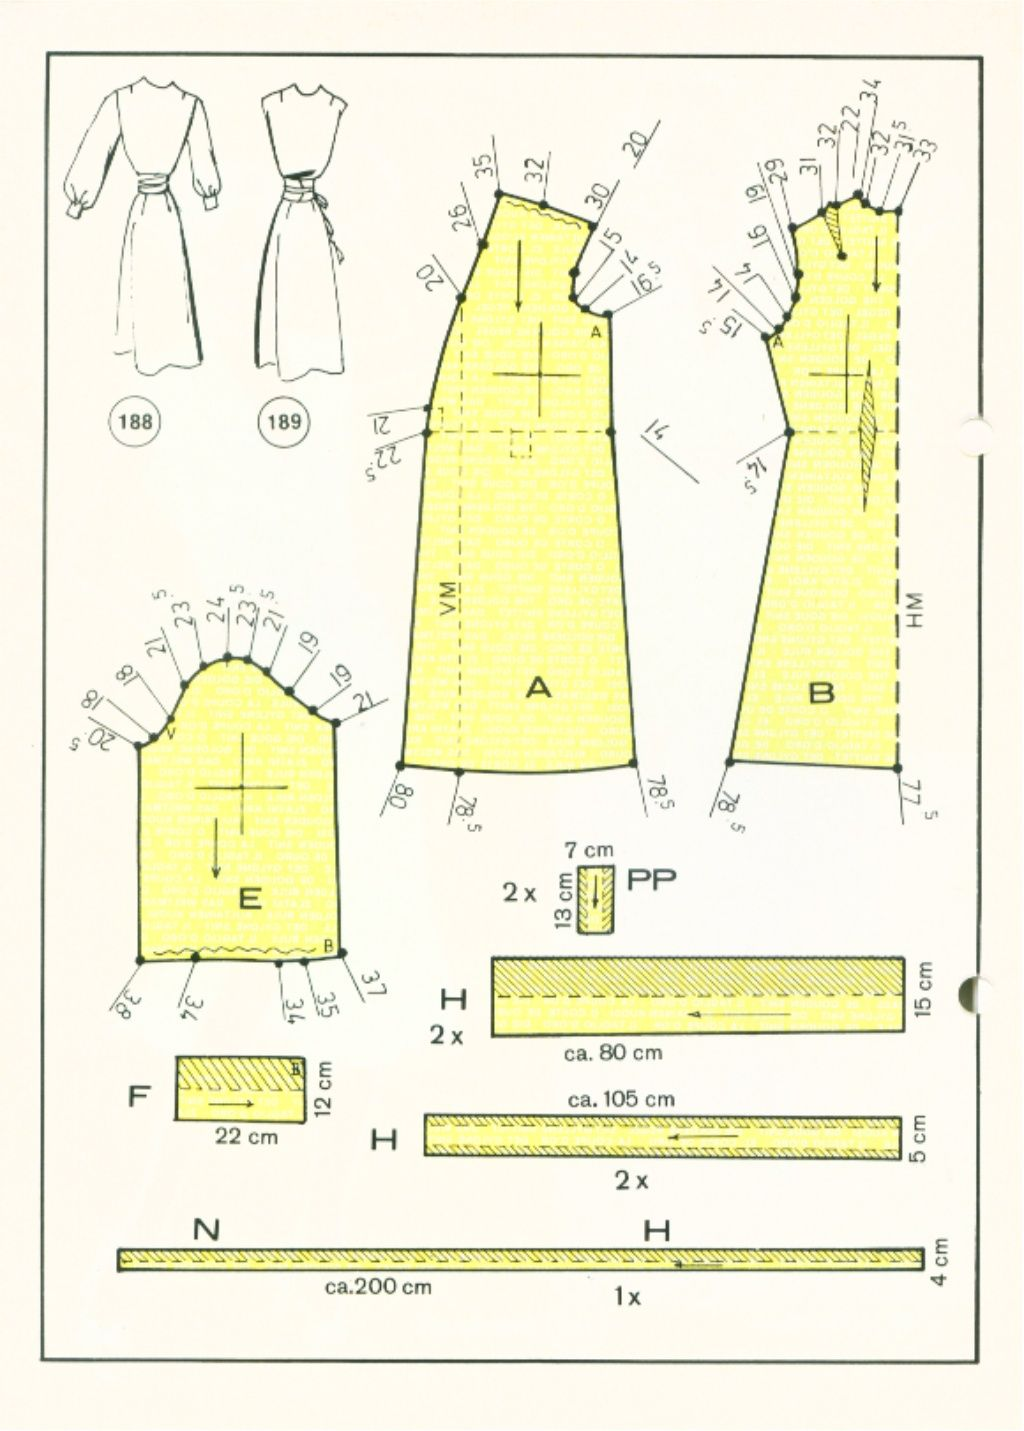 Pin by Ketutar J. on Fiber Crafts: sewing clothes | Pinterest ...